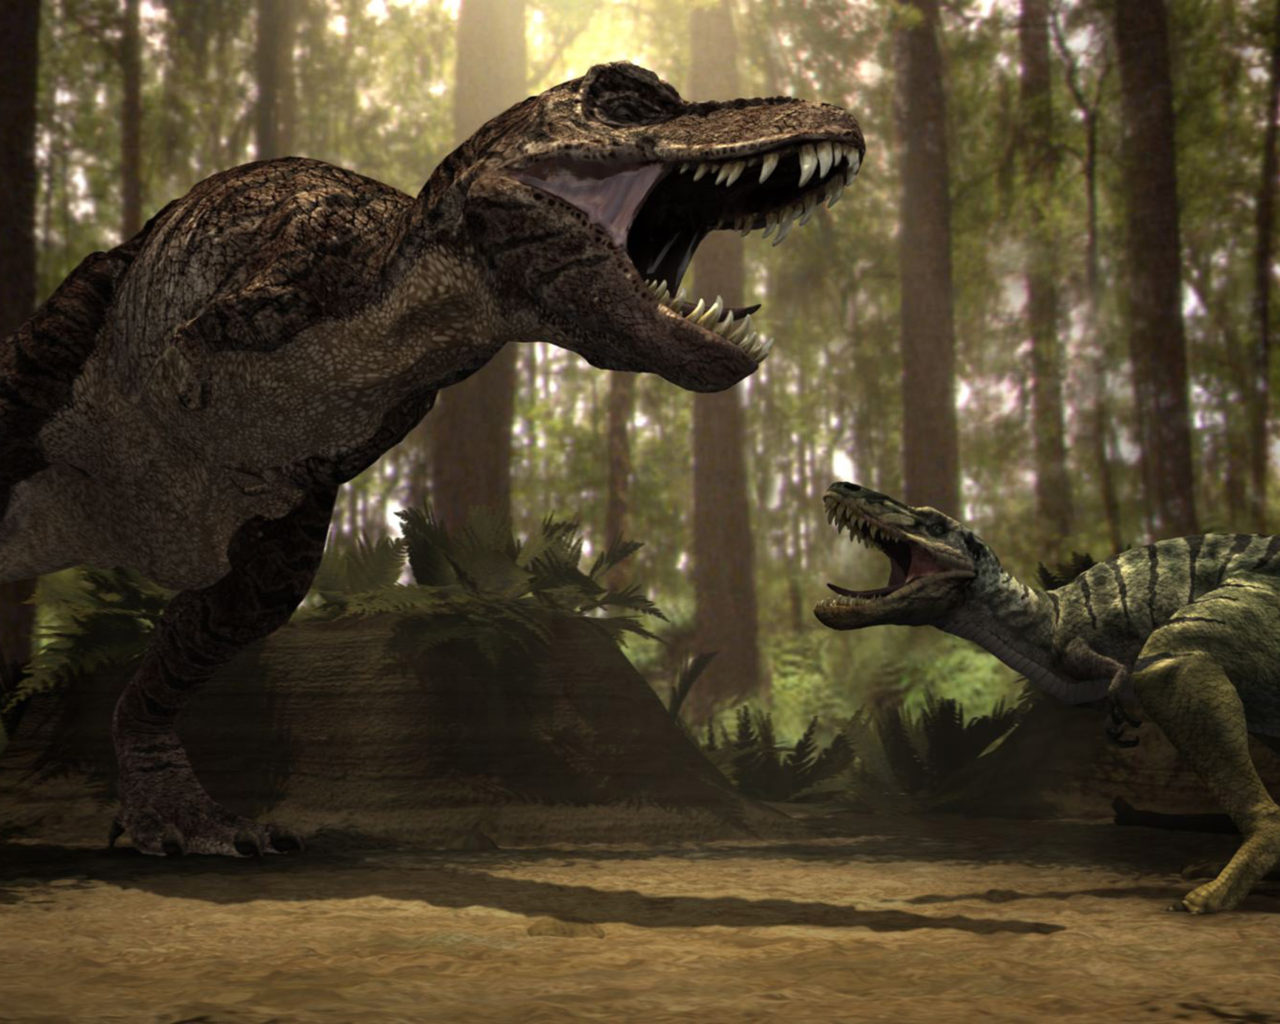 Iphone X Star Wars Live Wallpaper Dinosaurs Wallpapers Hd 0976 Wallpapers13 Com